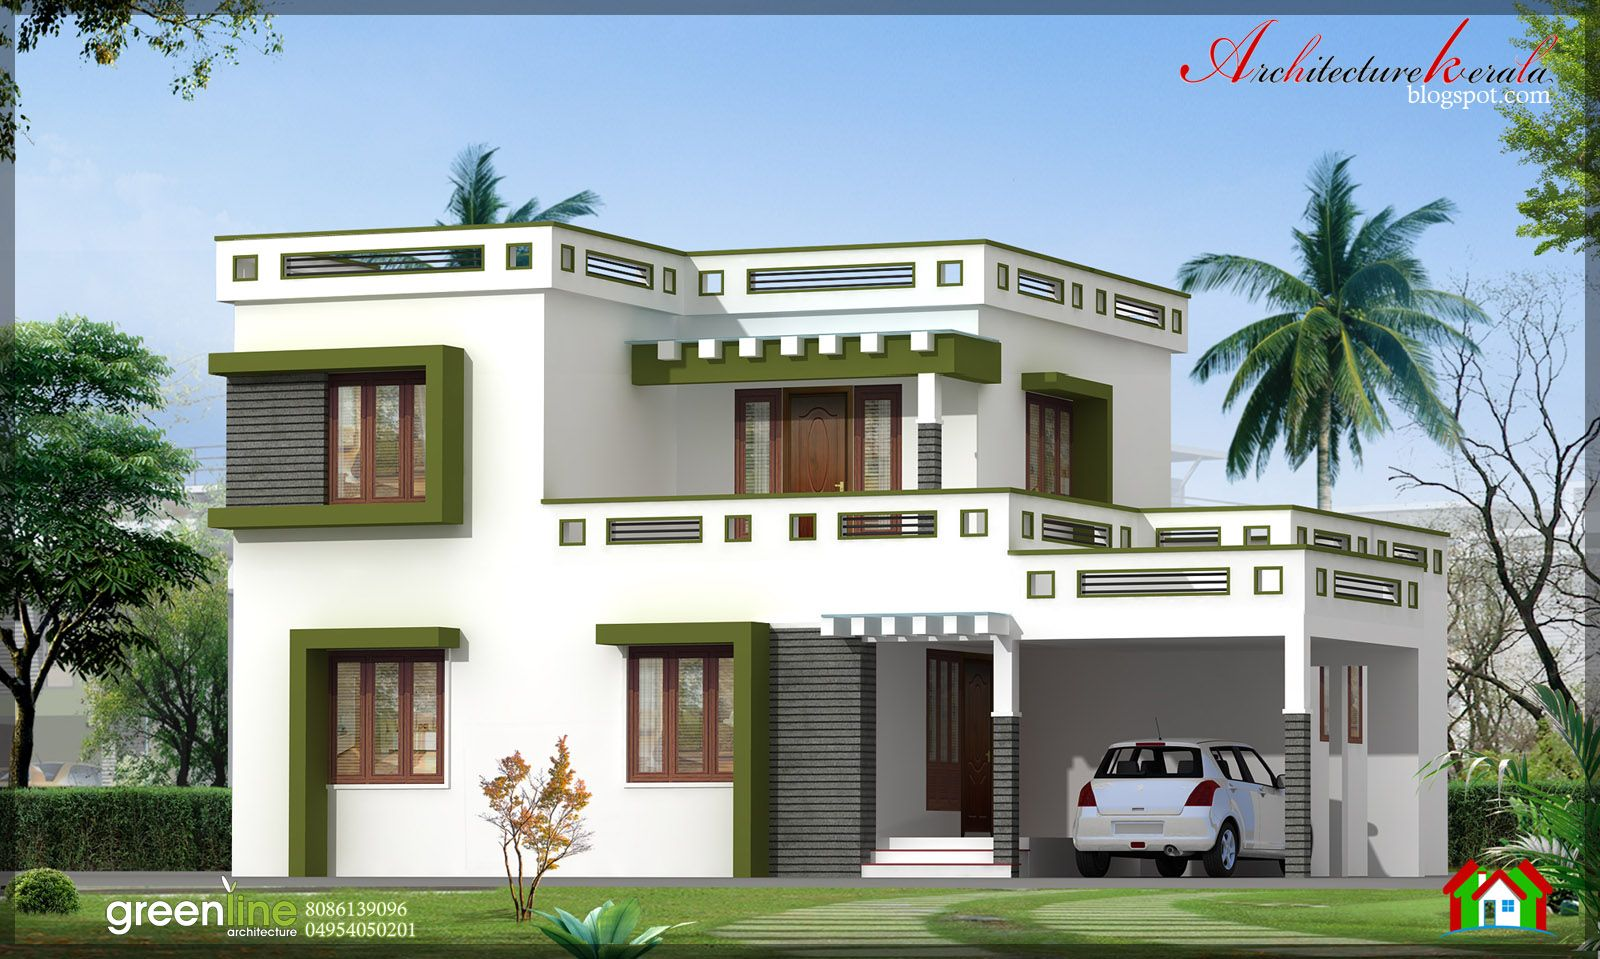 Kerala house plan photos and its elevations contemporary style elevation traditional kerala - Key of create perfect contemporary style ...